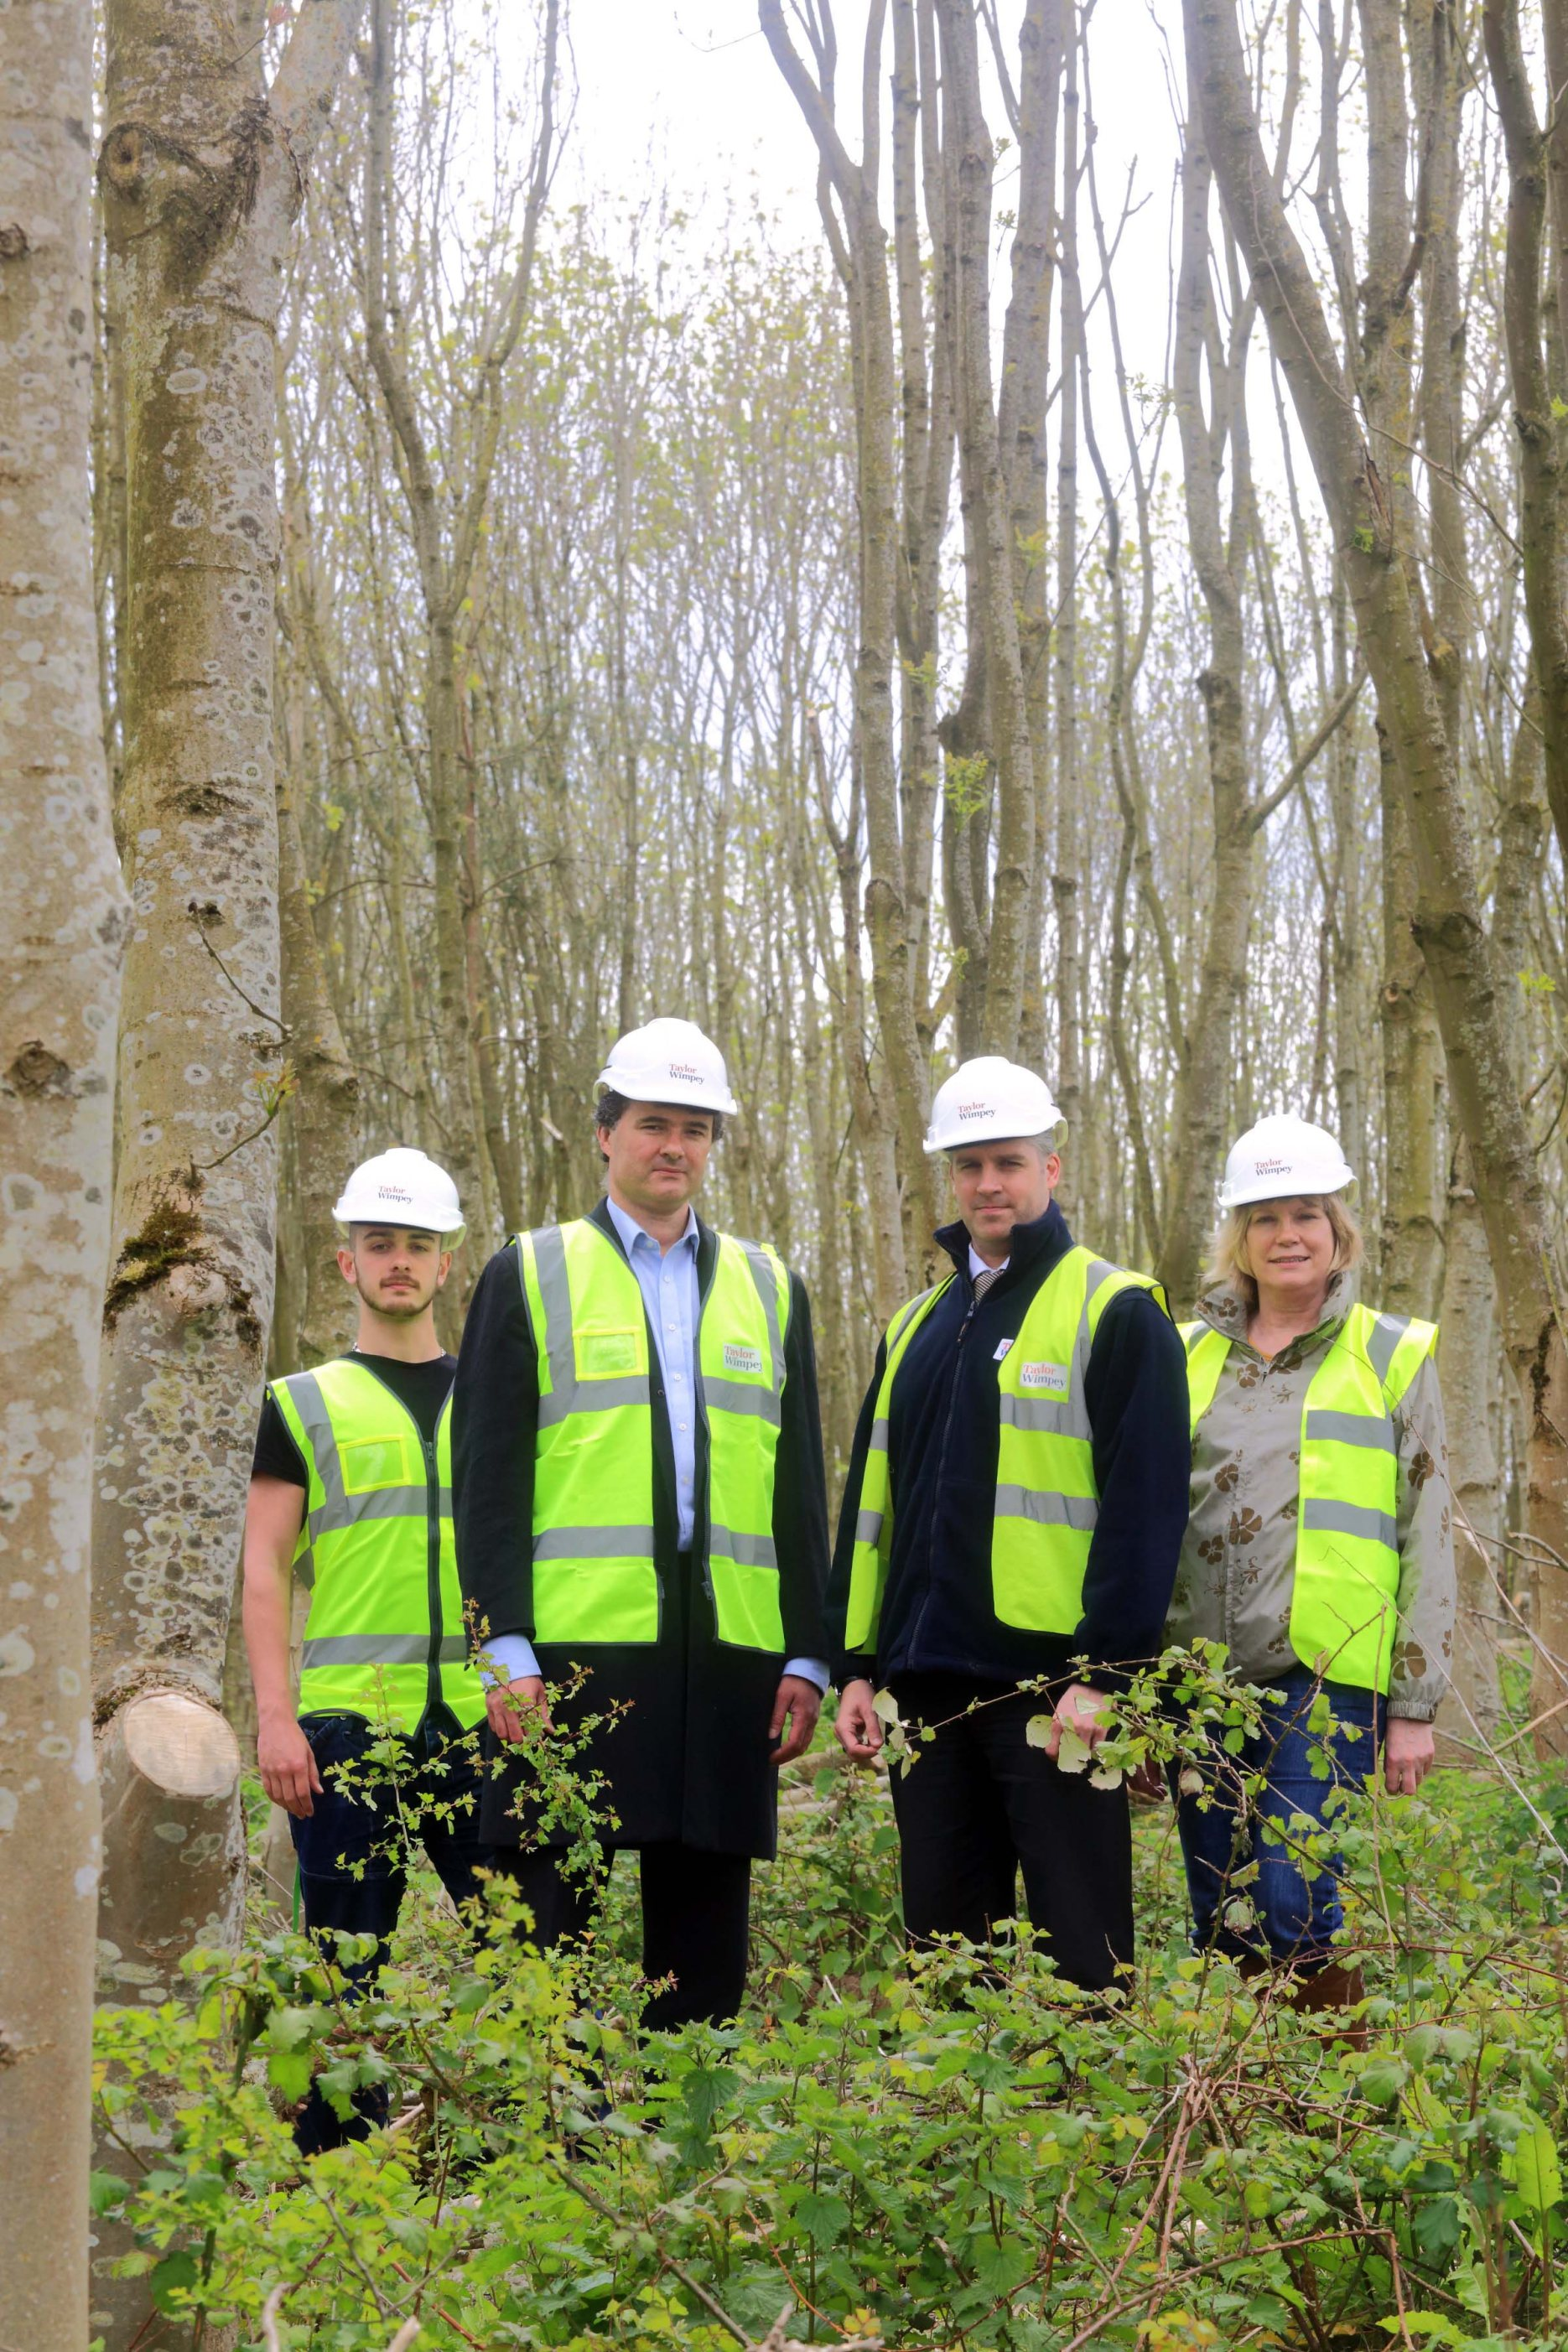 Taylor Wimpey - Sims Hill - Community Woodland 1